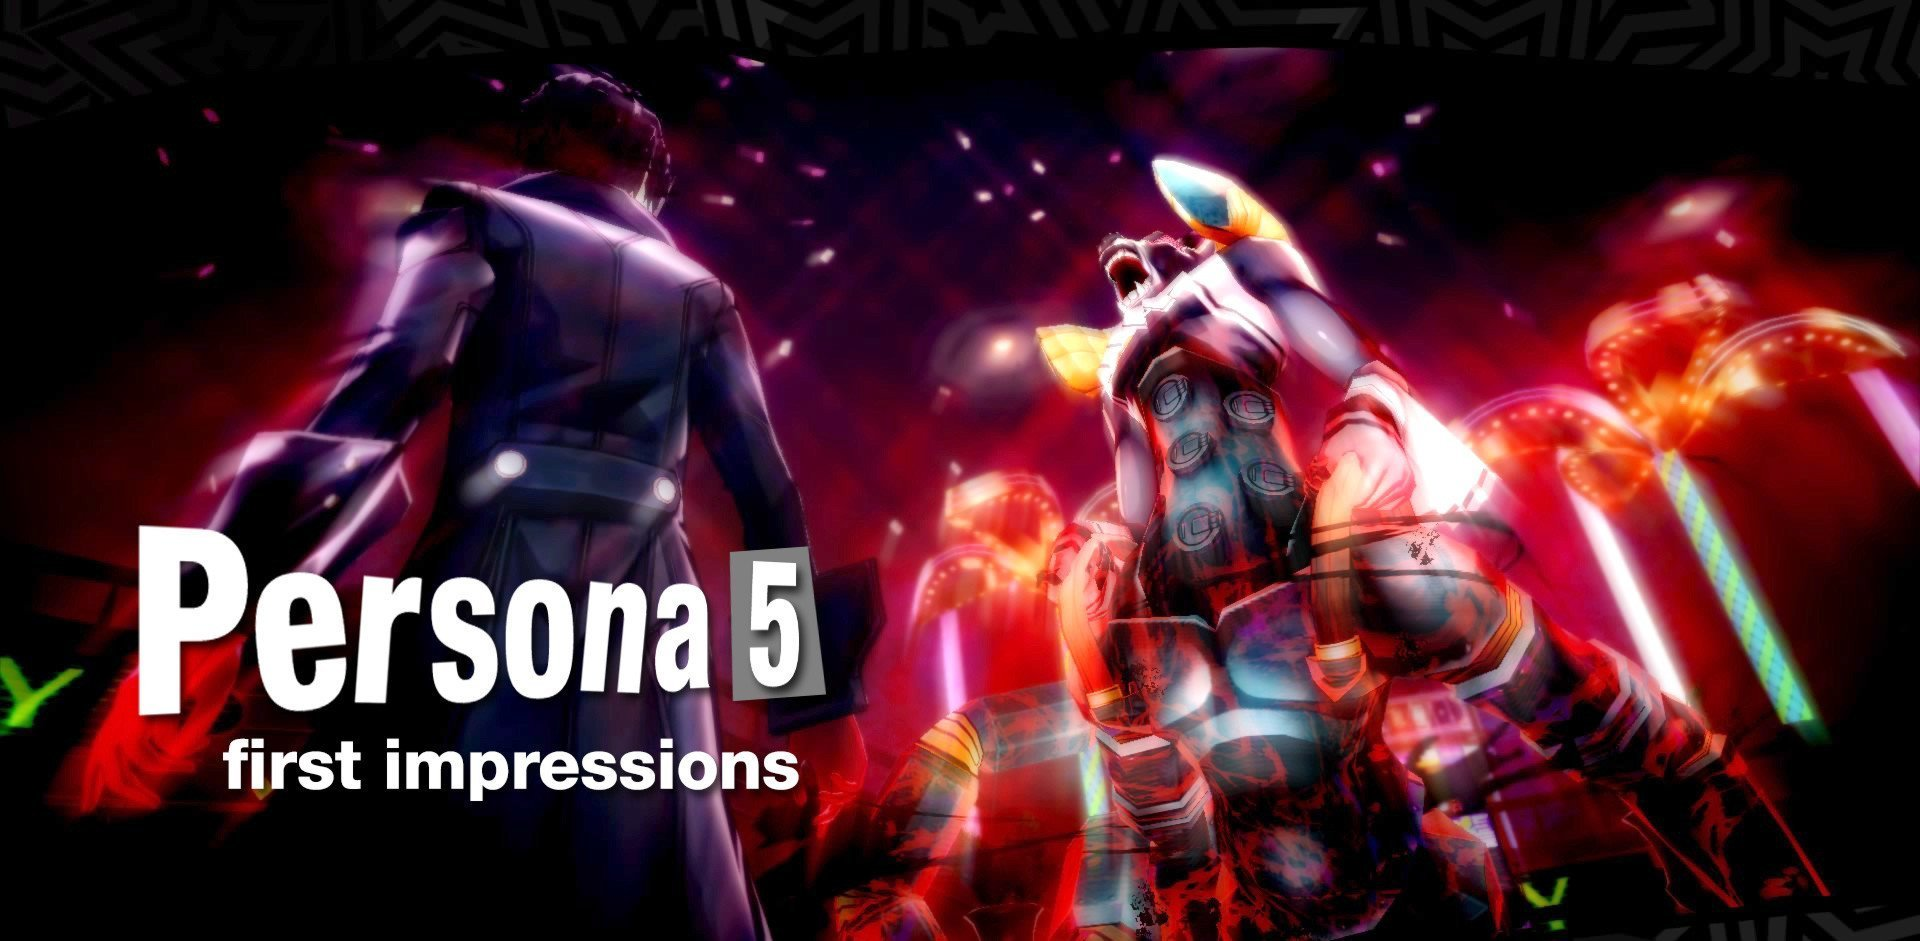 Persona 5: First Impressions